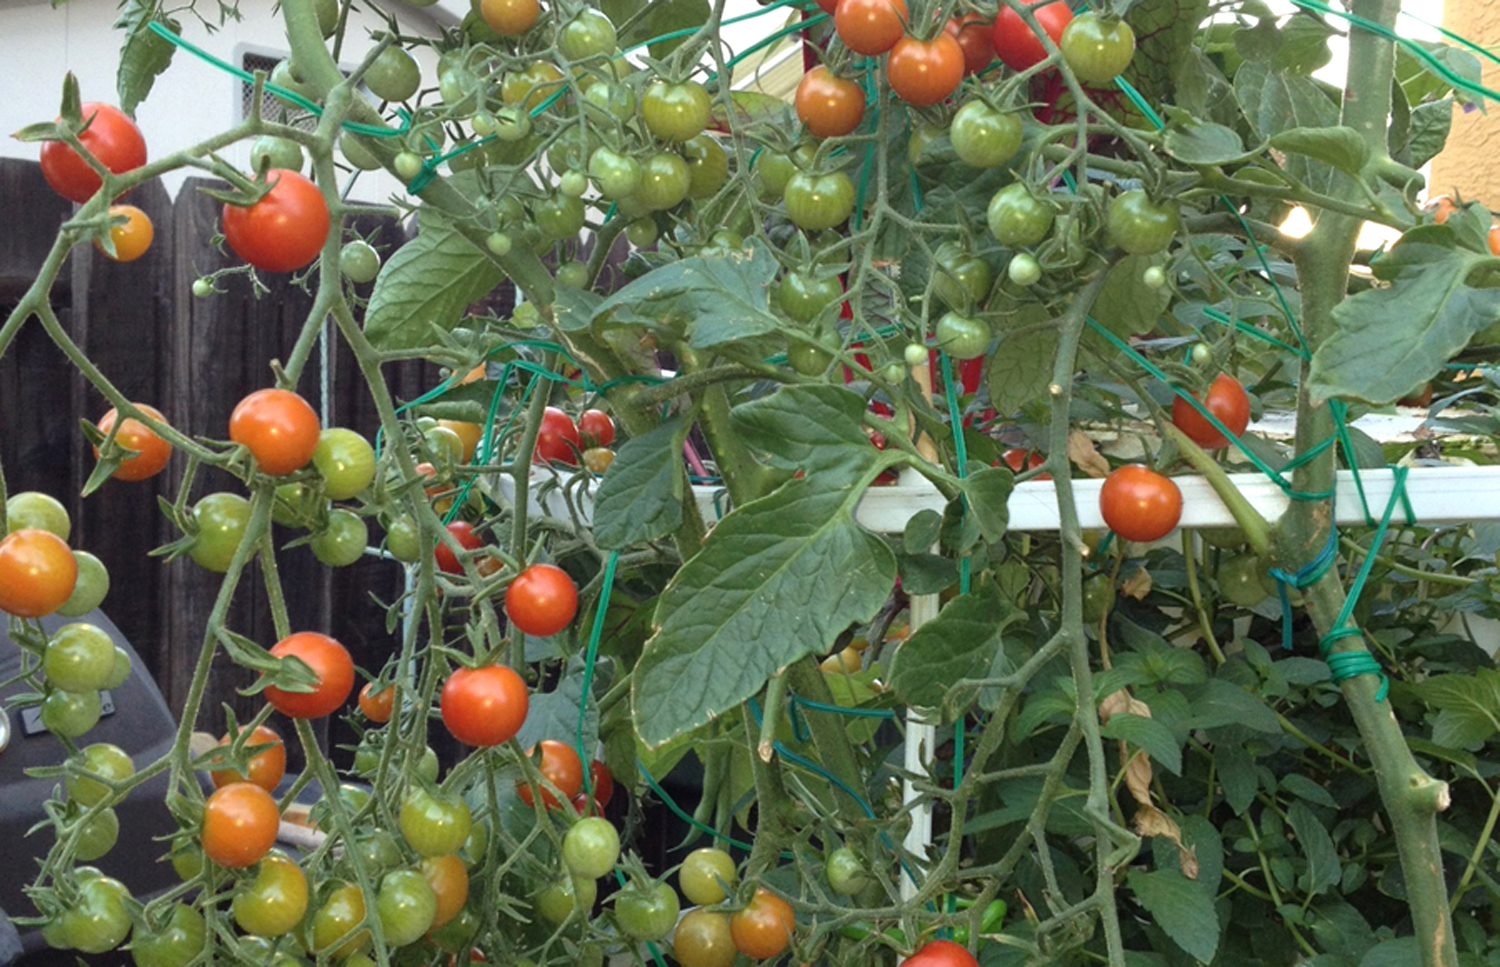 100s of tomatoes